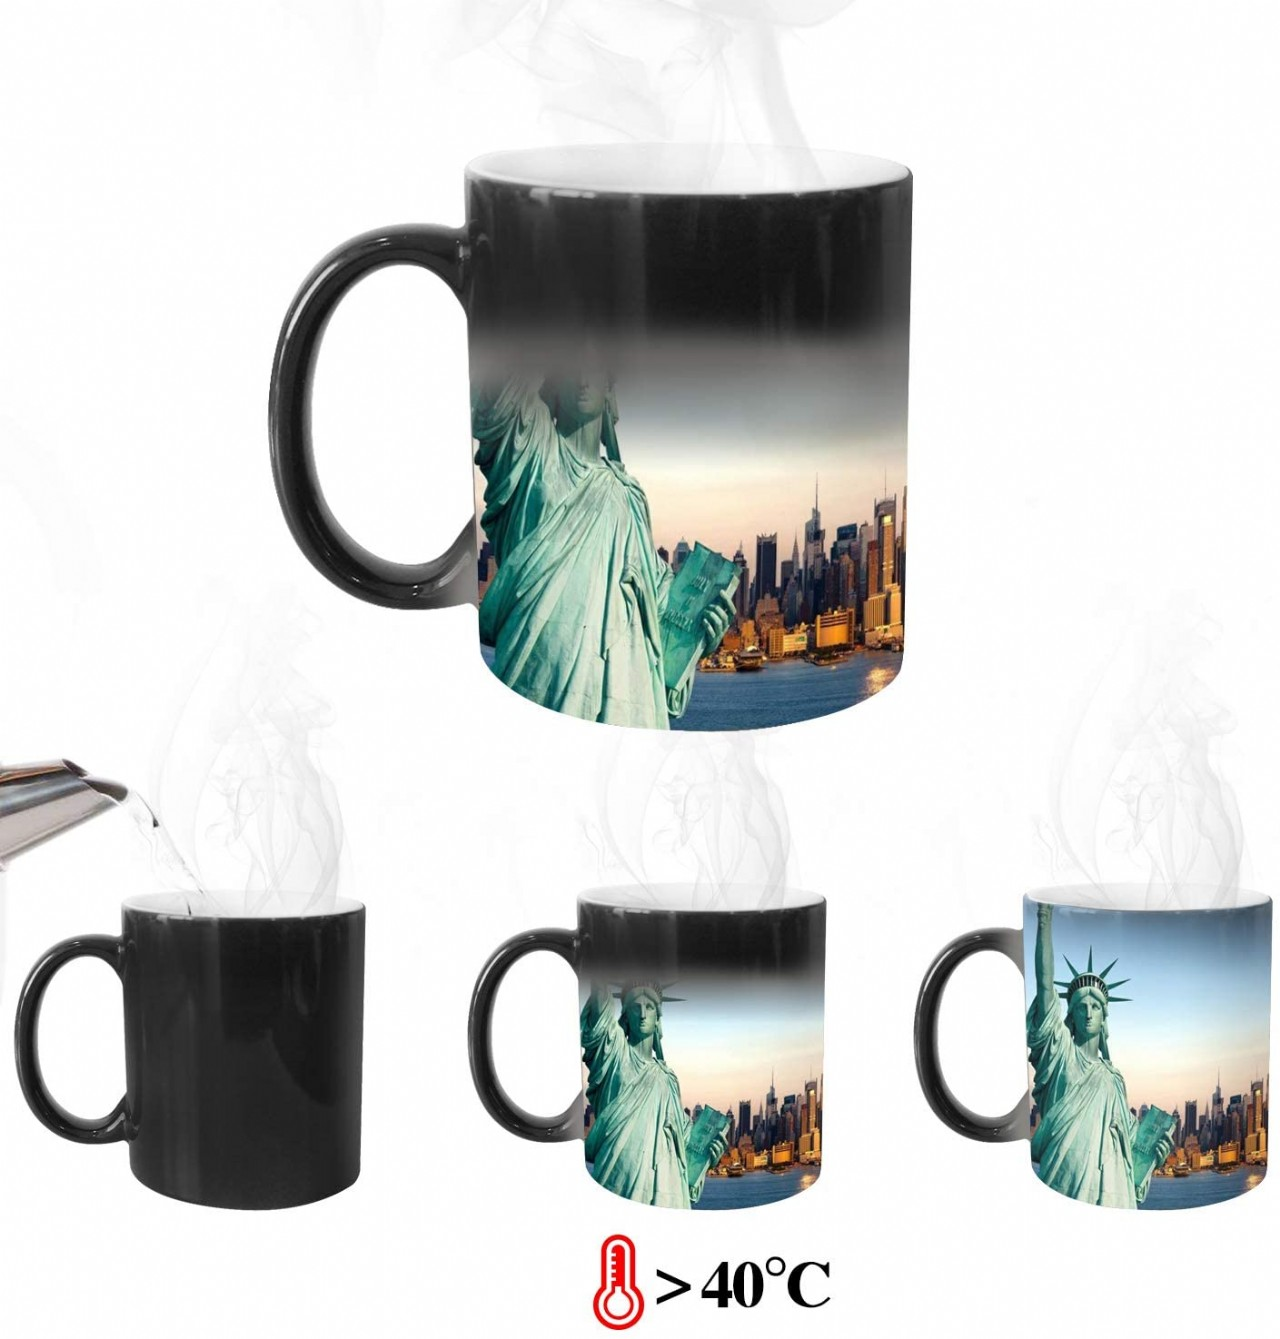 8PCS Coffee Mugs 11OZ Sublimation Blanks Coffee Mug Coffee Cup for Coffee Tea (8 pcs Heat Sensitive)